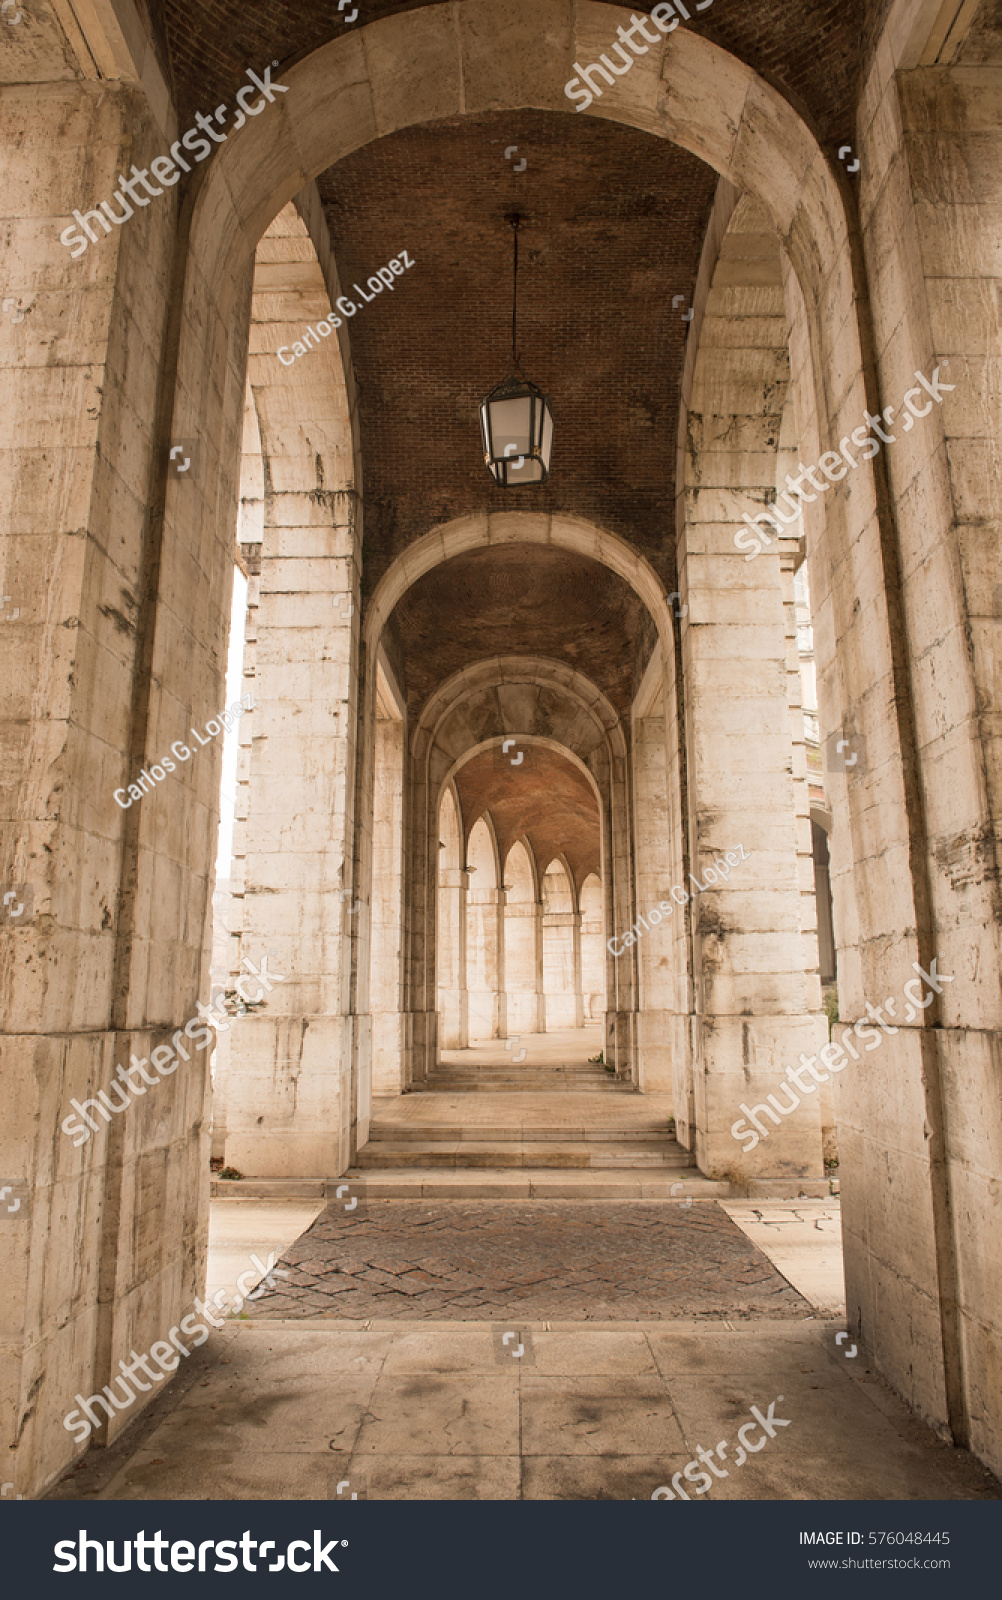 View Archway Royal Palace Aranjuez Madridwith Stock Photo